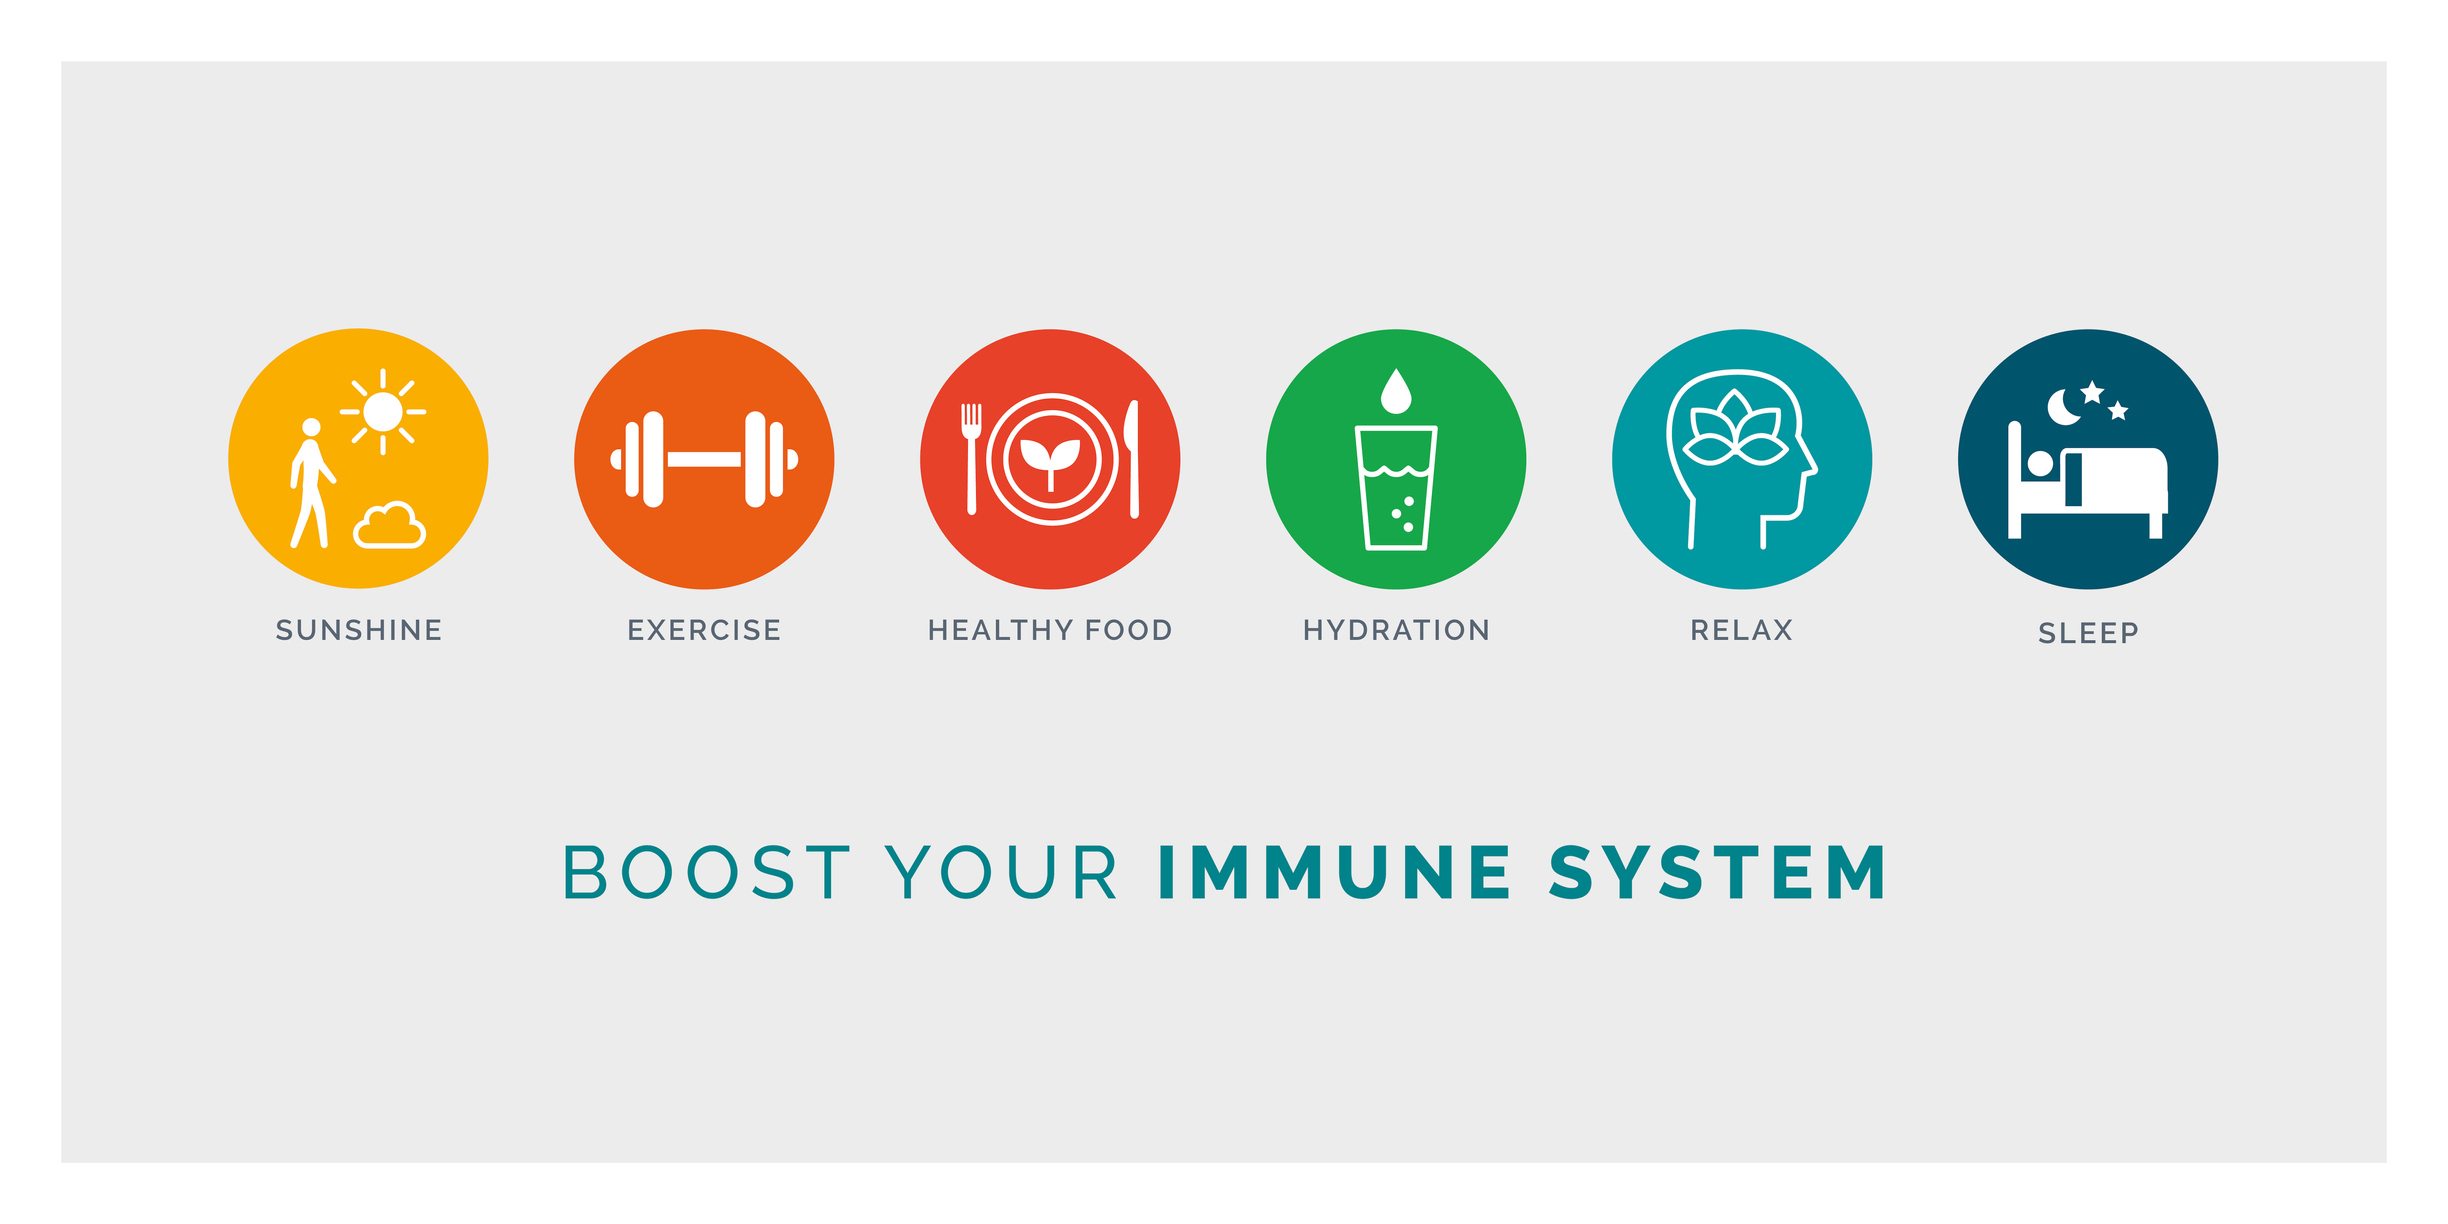 Top Tips That Help Boost Your Immune System in Pandamic